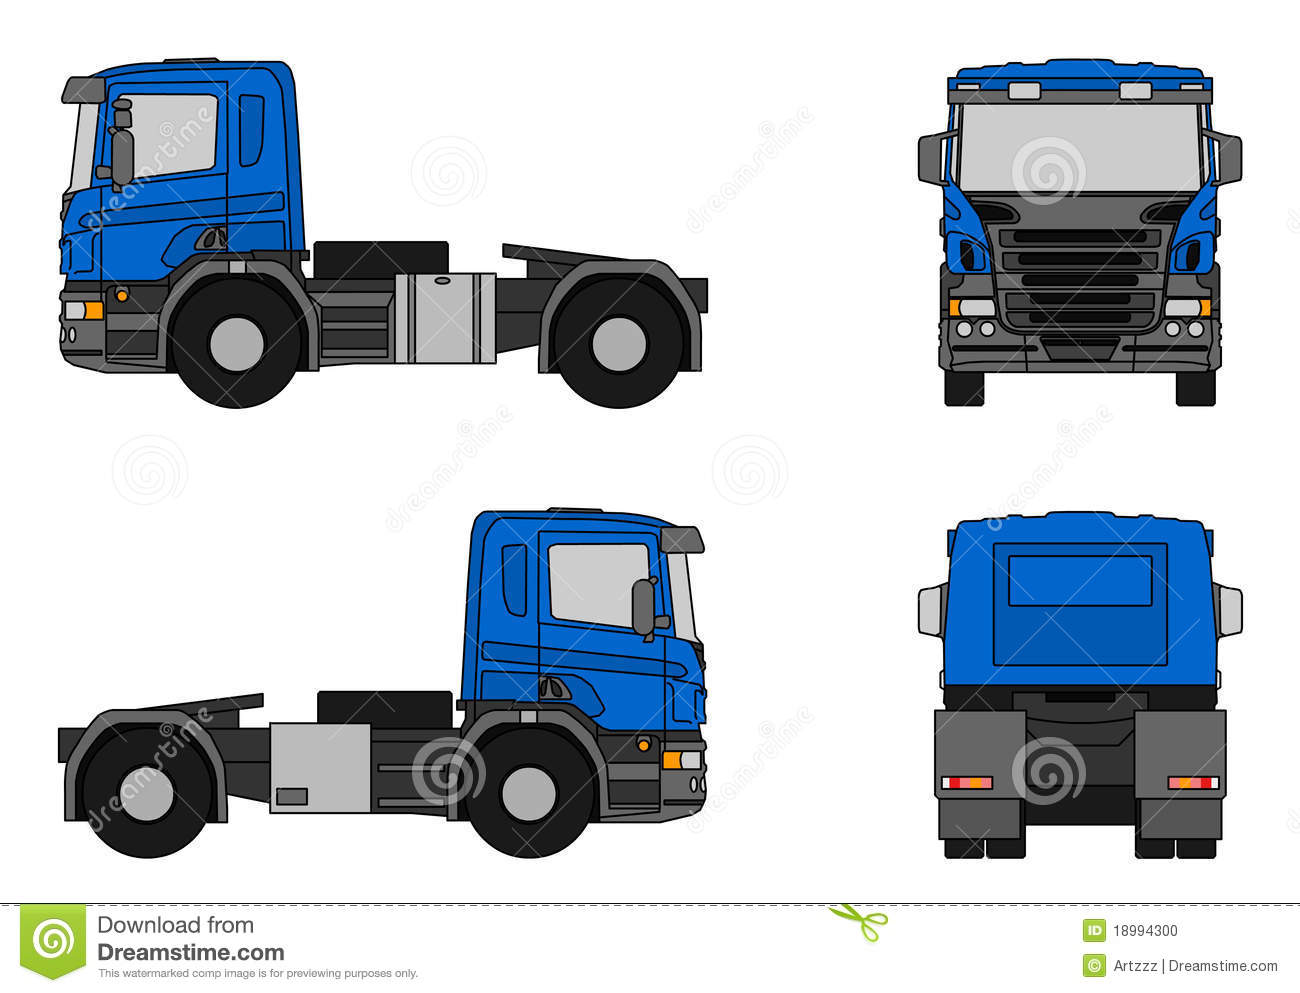 Camion de semi remorque illustration stock illustration - Dessin de camion semi remorque ...